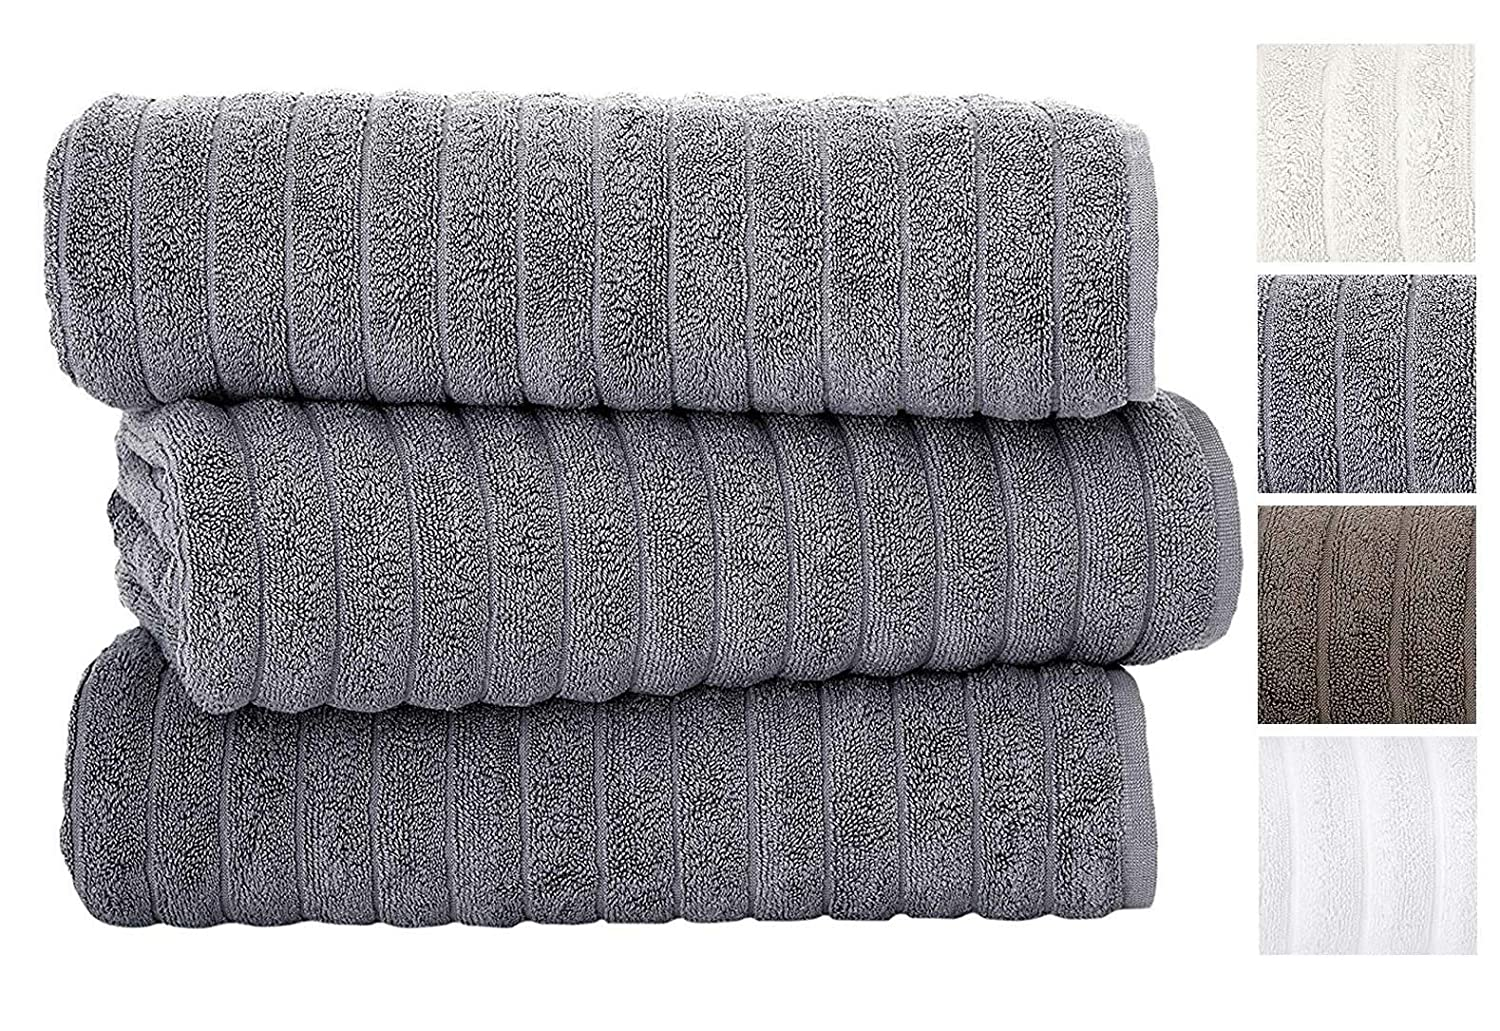 Classic Turkish Towels 3 Piece Luxury Bath Sheet Set - 40 x 65 Inch Soft and Thick Oversized Bathroom Towels Made with 100% Turkish Cotton (Grey) ClassicTurkishTowels